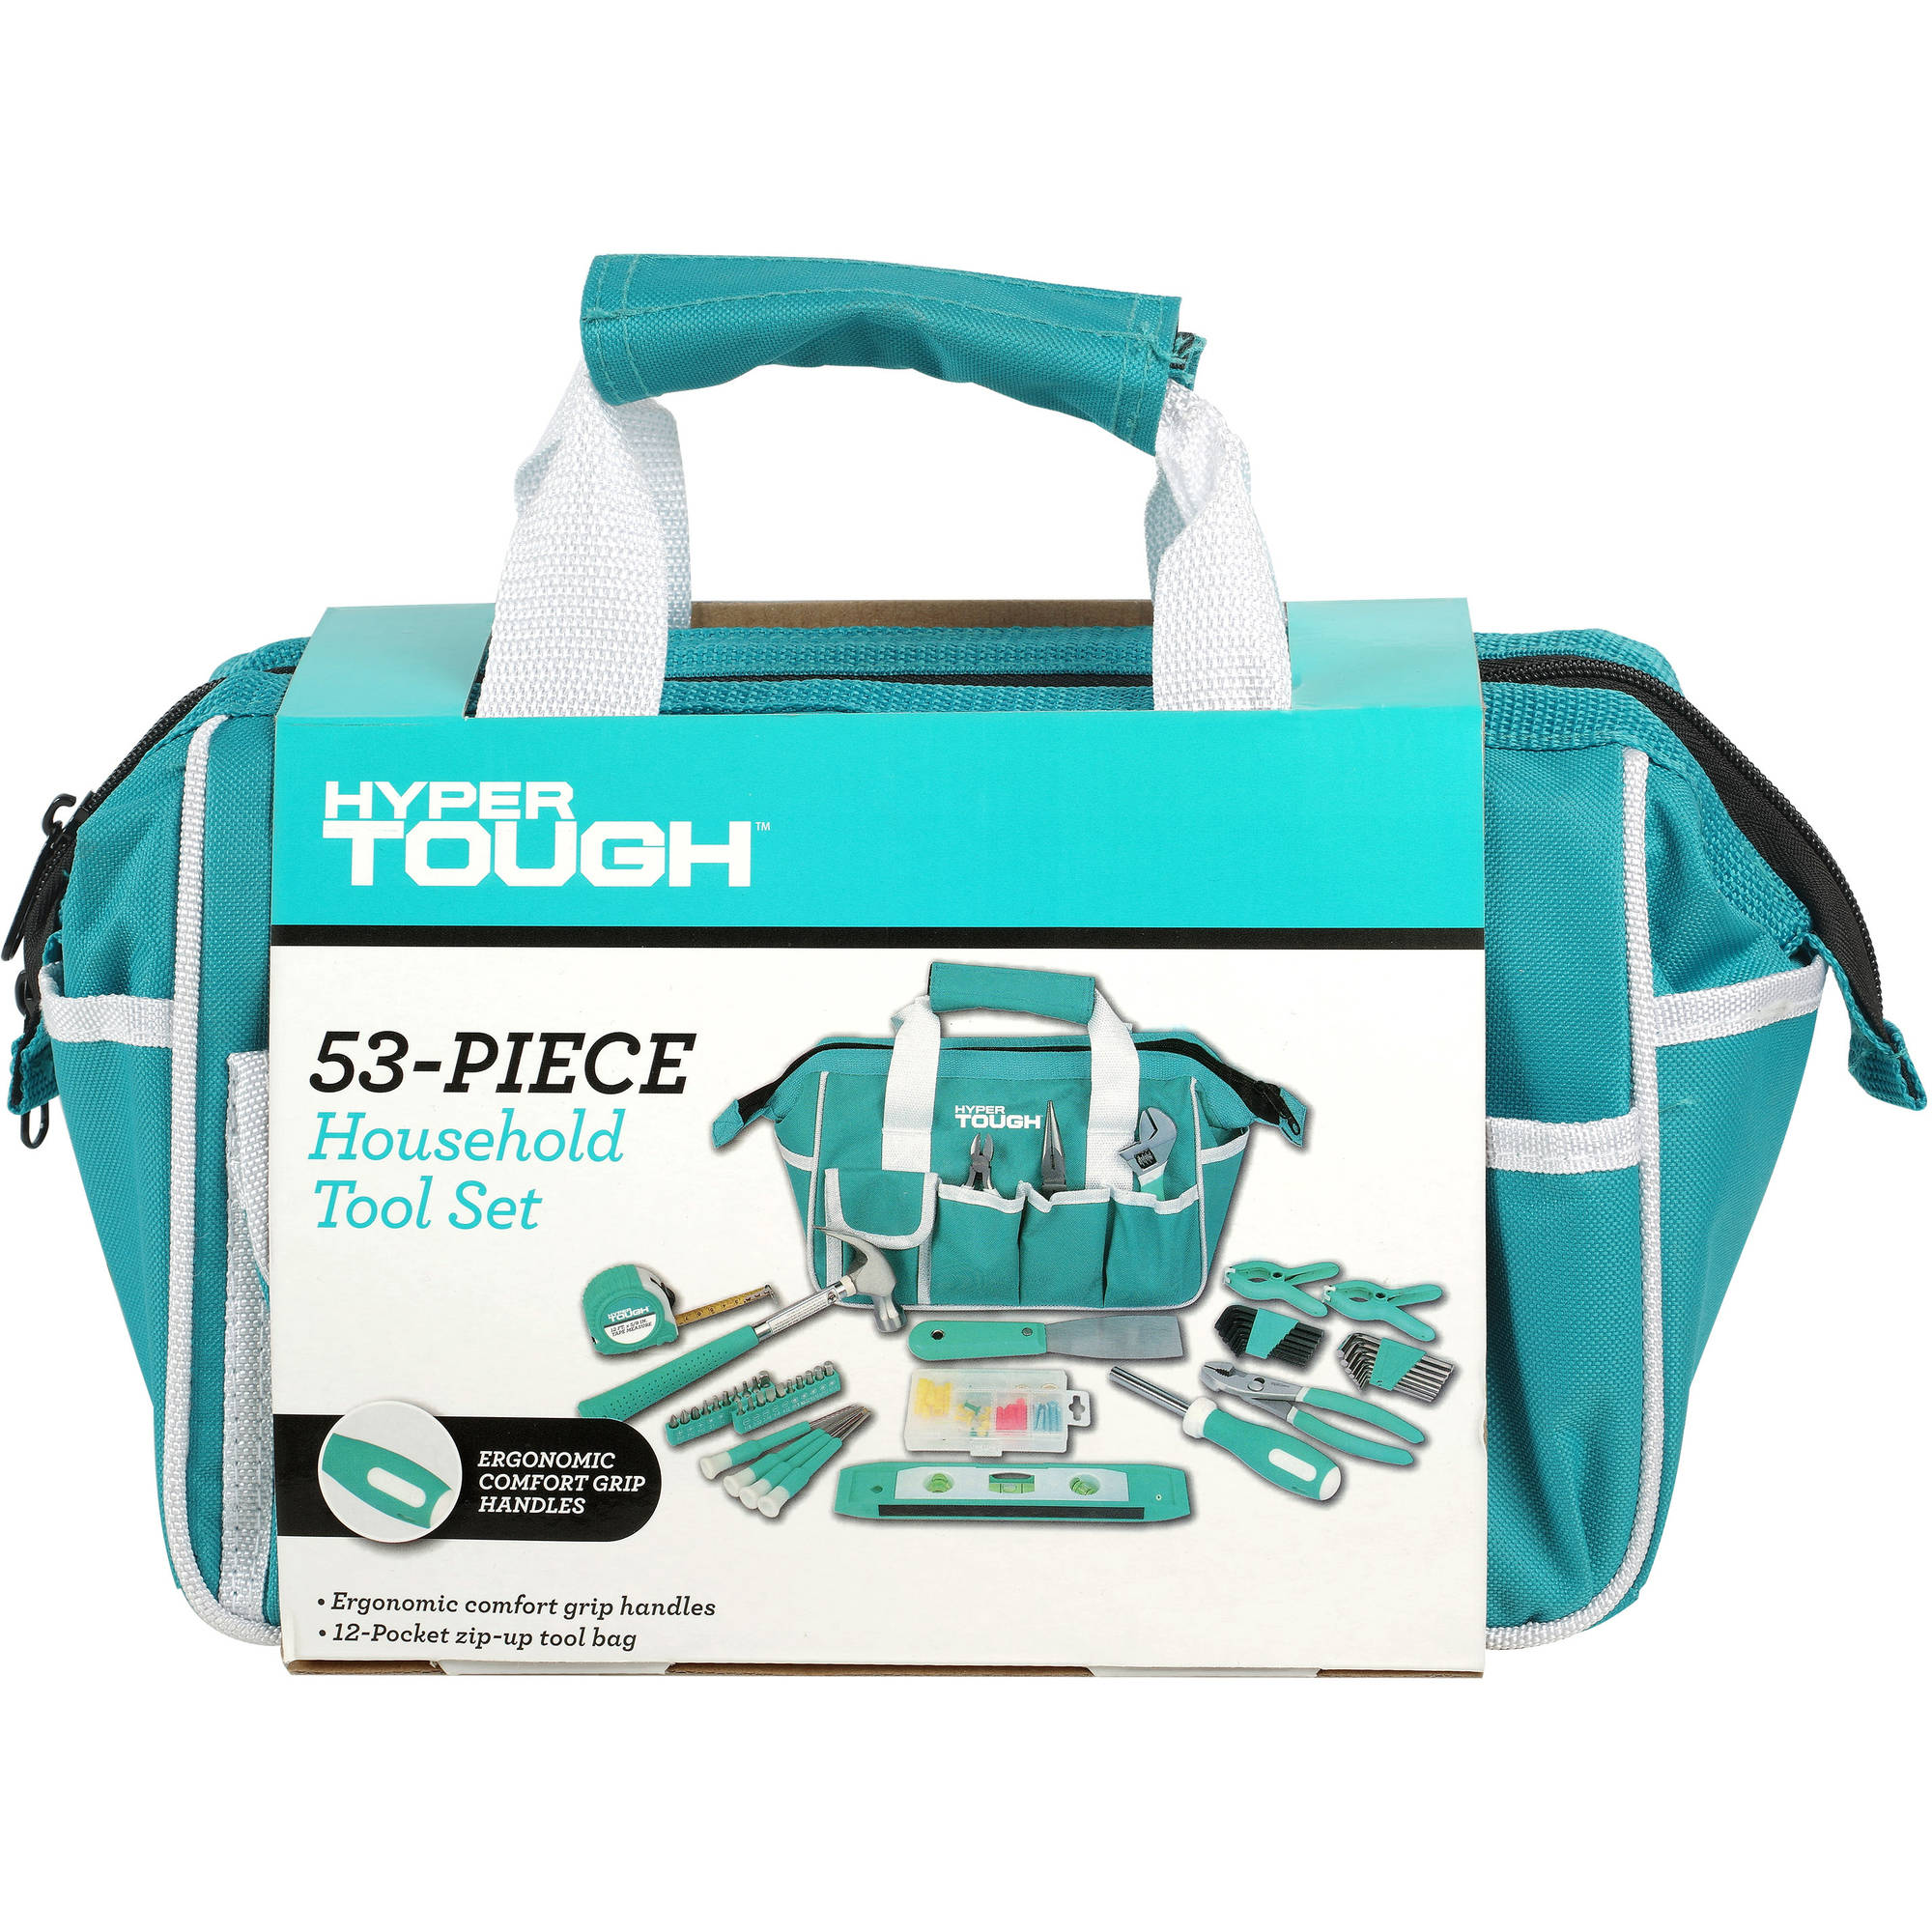 Hyper Tough 53-Piece Teal Toolset